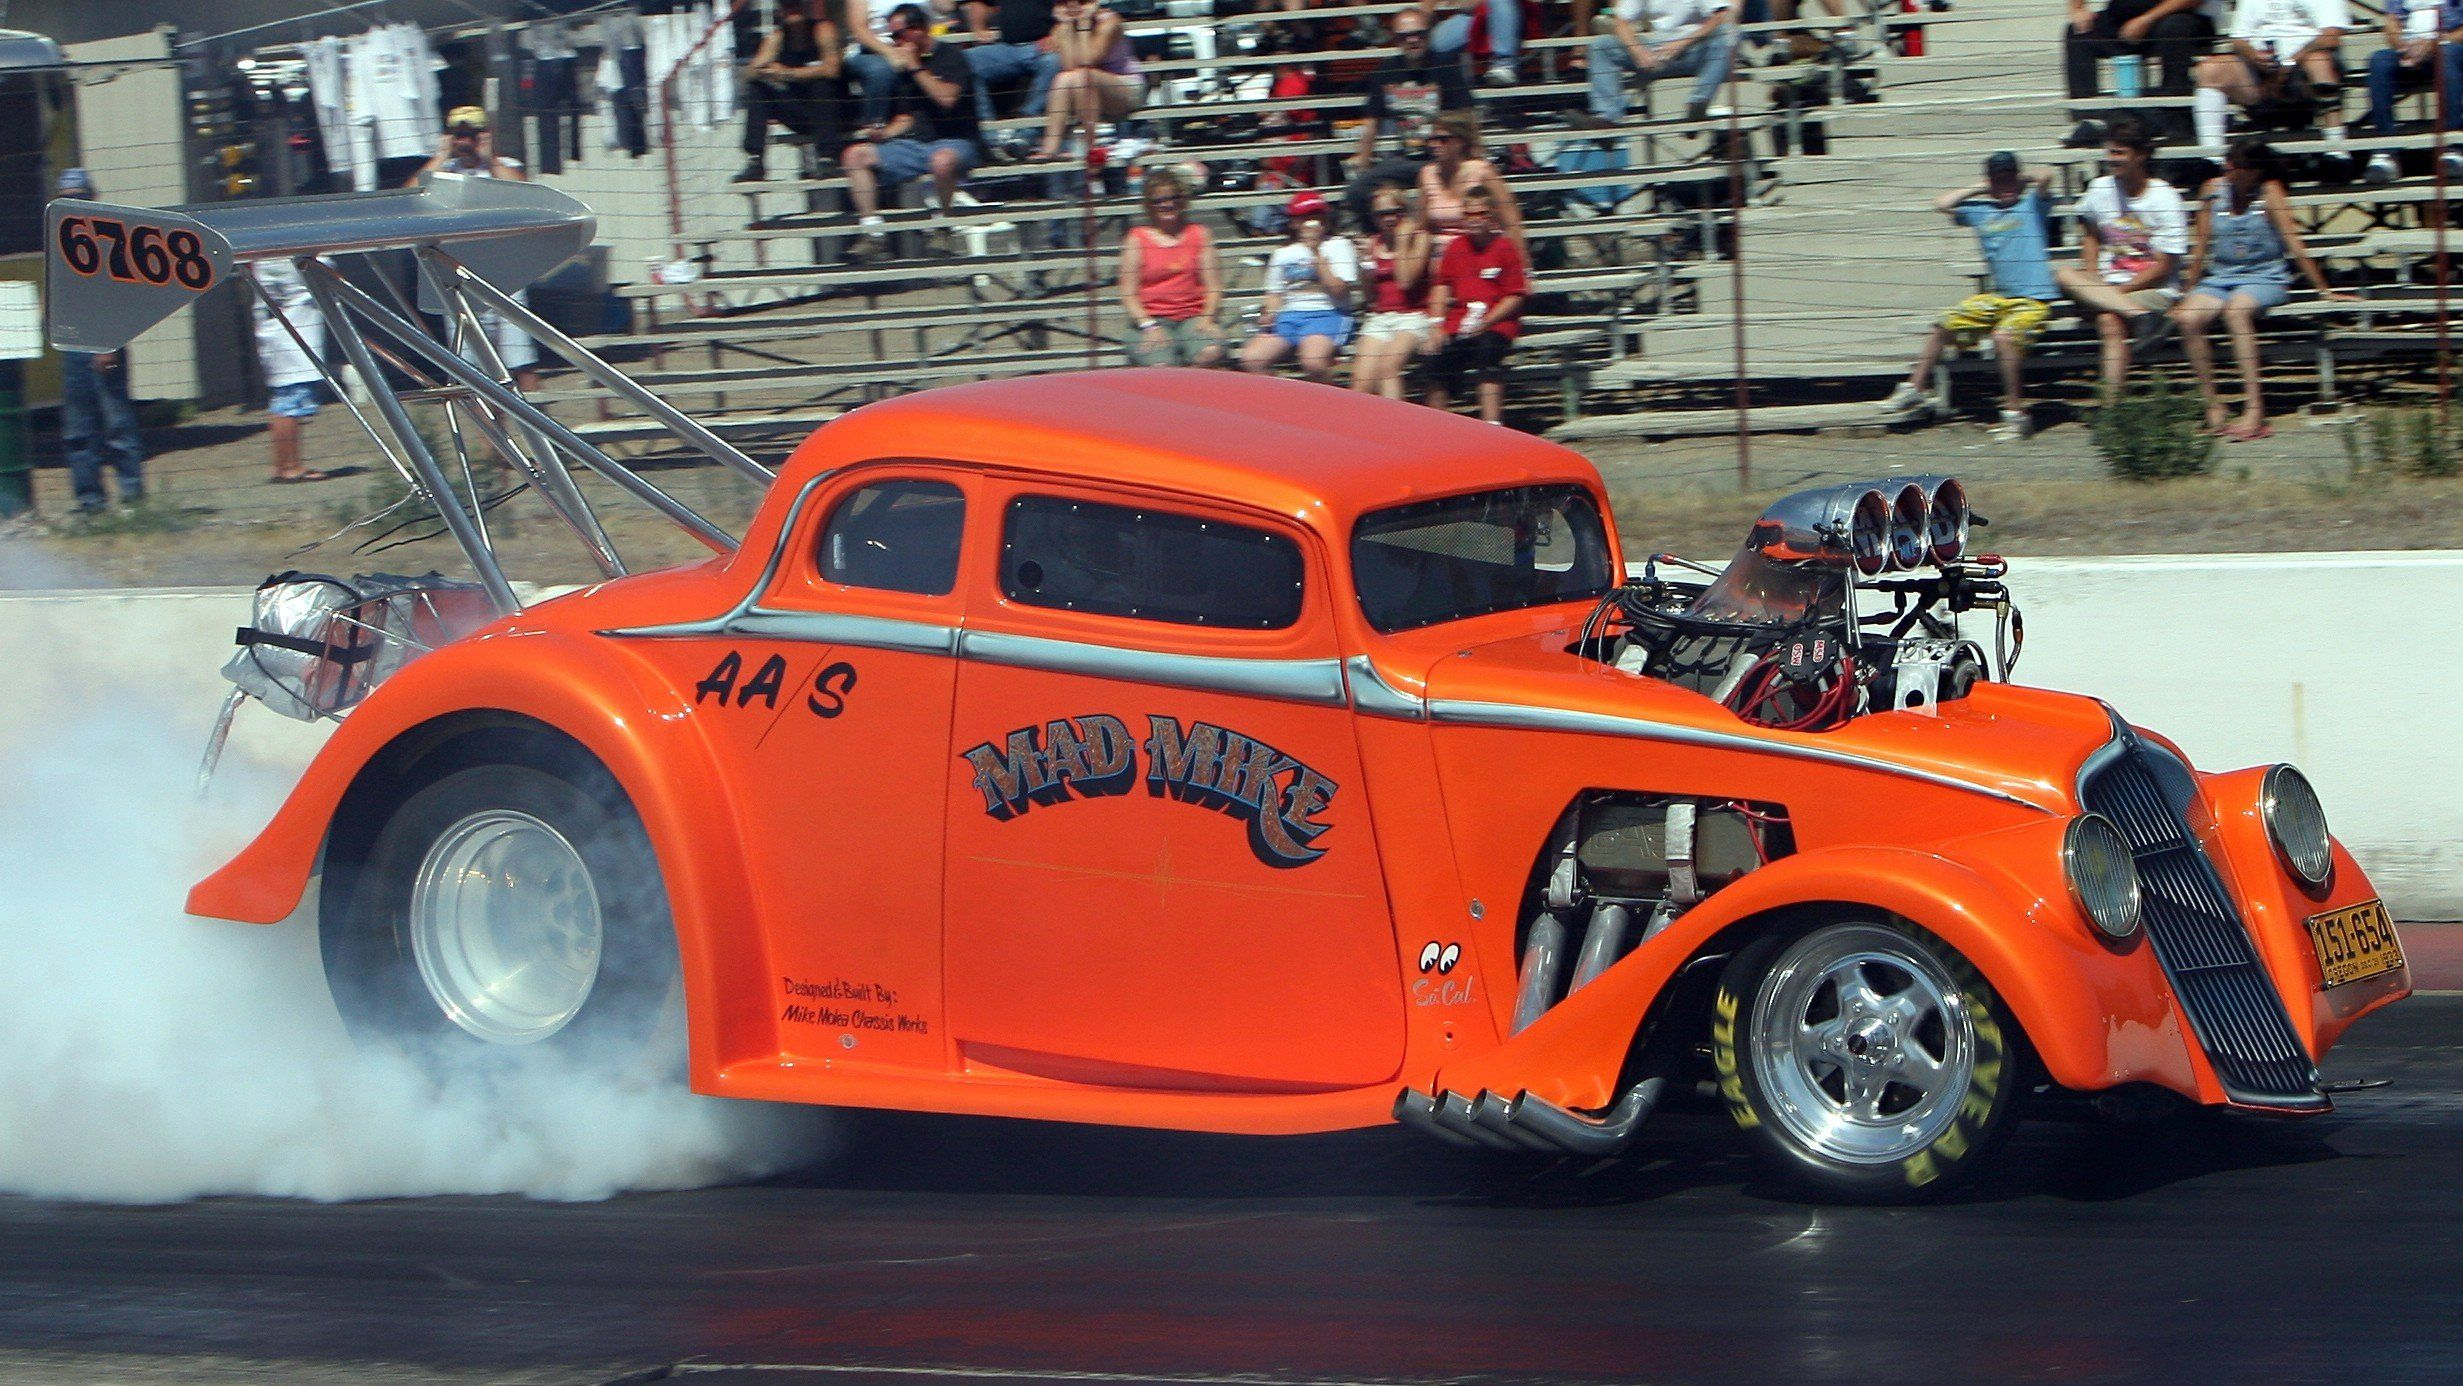 1933 willys coupe drag racing super stock dragster usa 2463x1386 wallpaper 2463x1386 677220